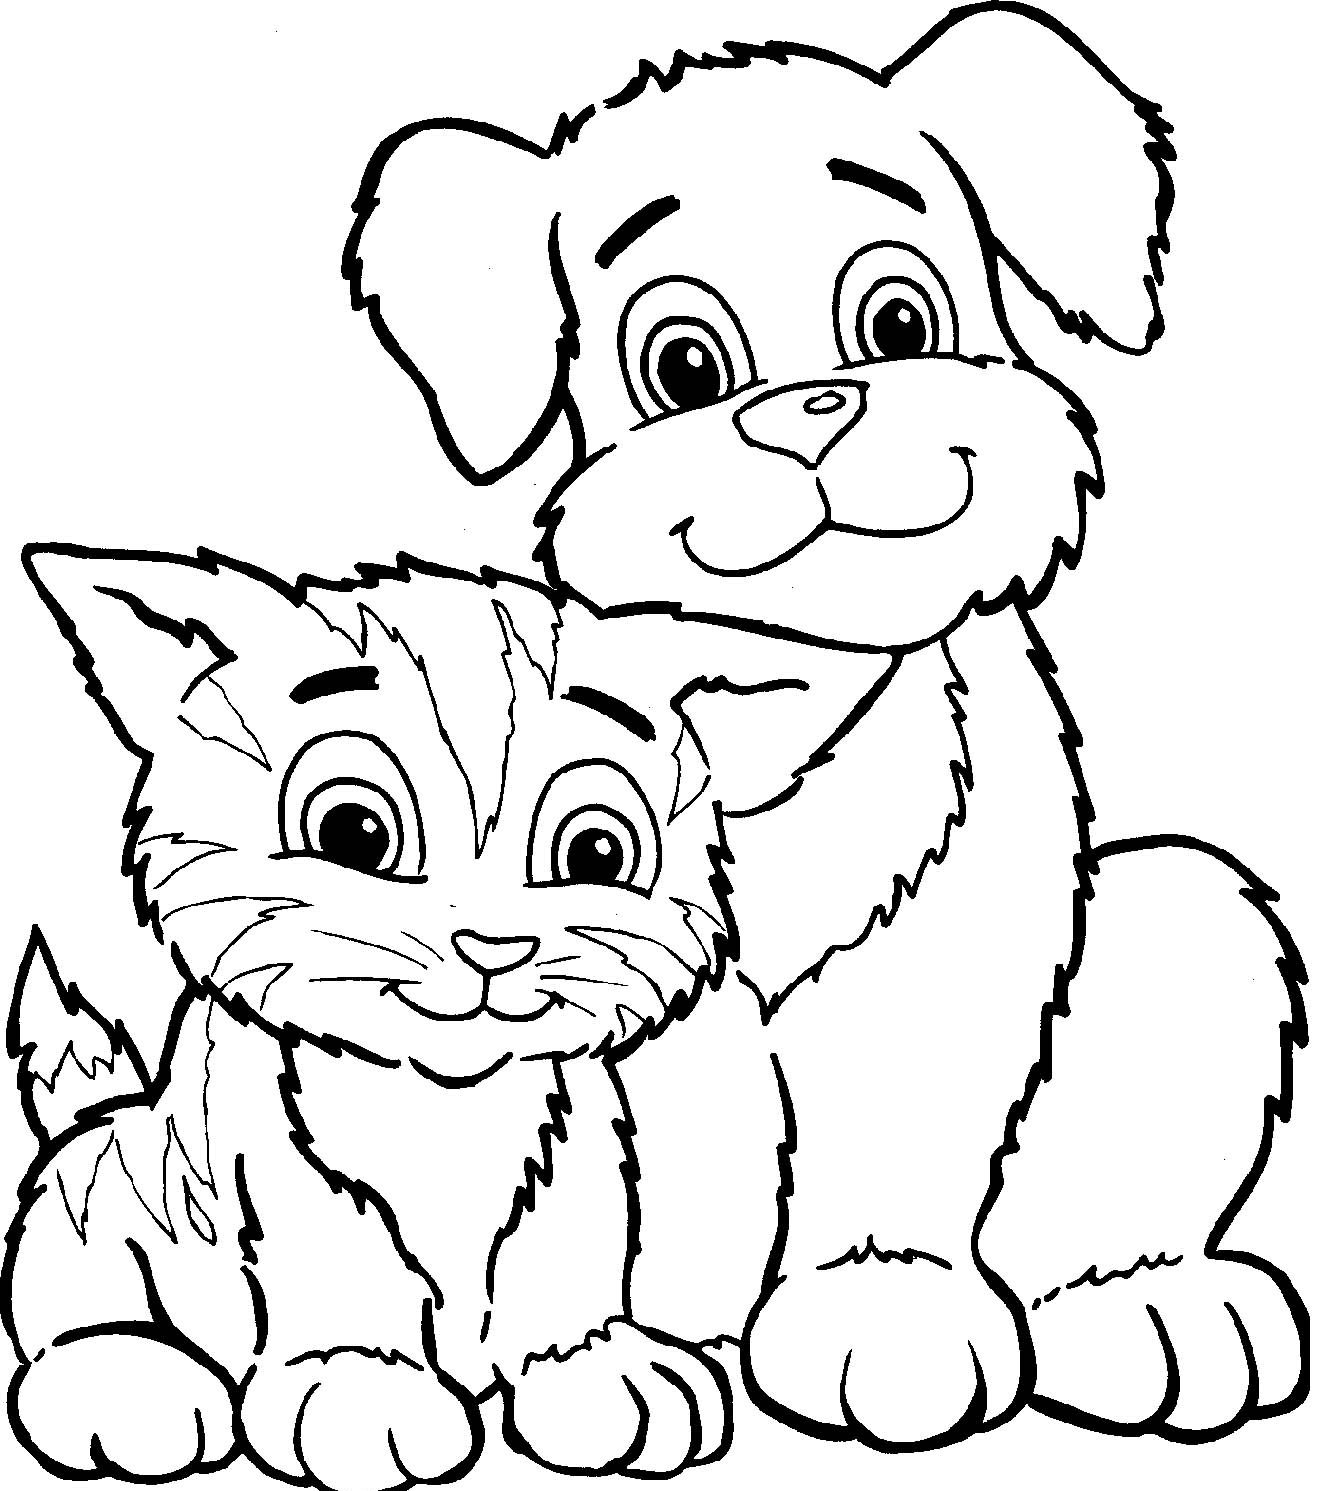 1328x1491 Drawing Dogs Cats Coloring Pages With Additional